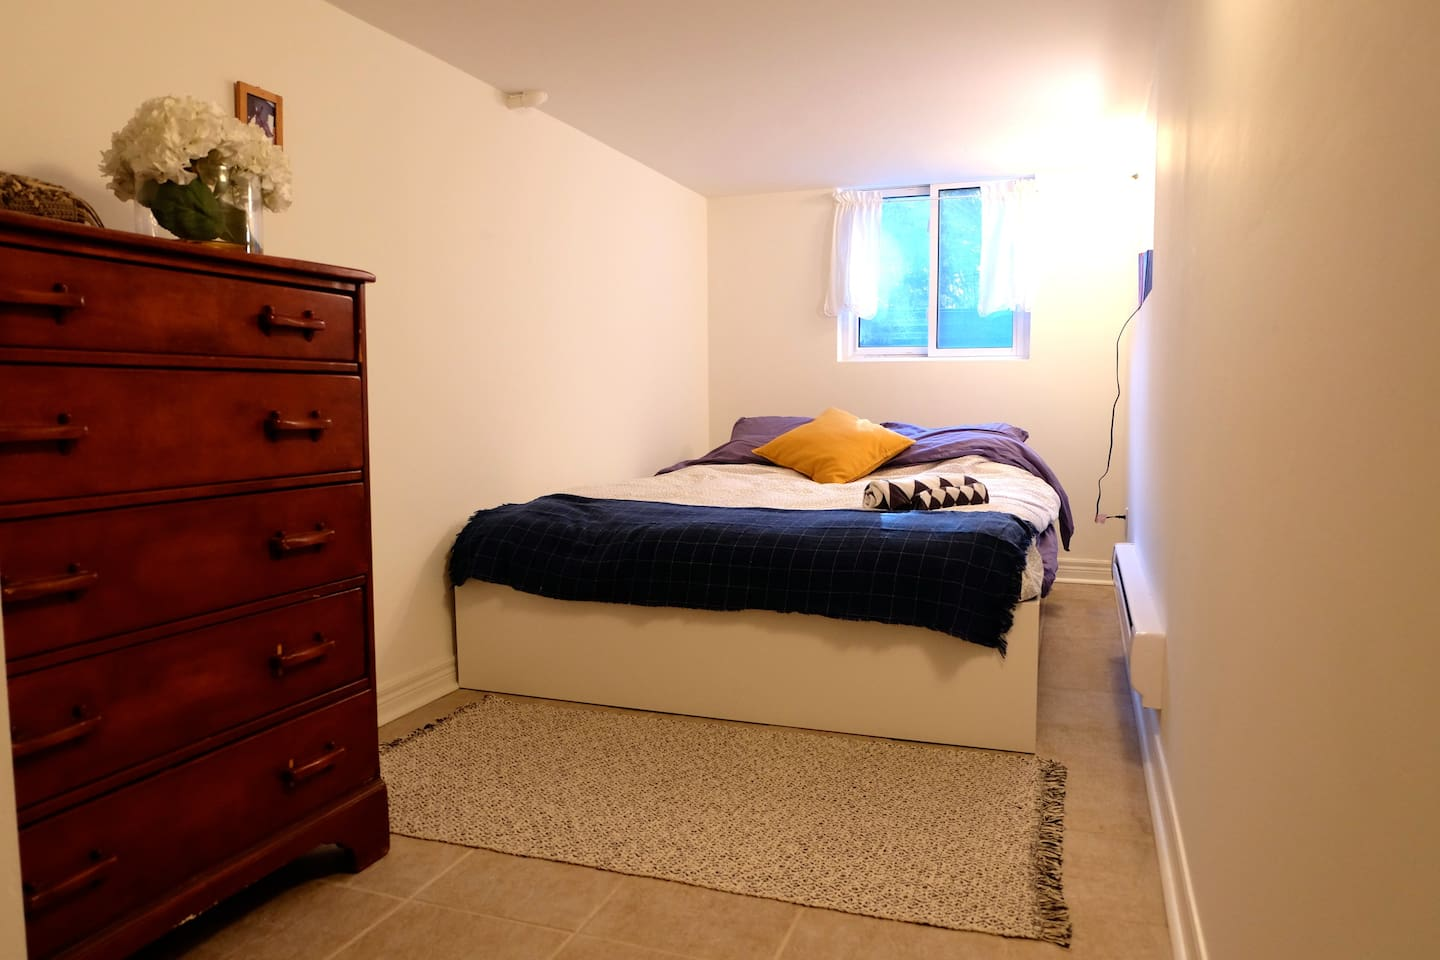 Bedroom with drawers and closet (not shown)